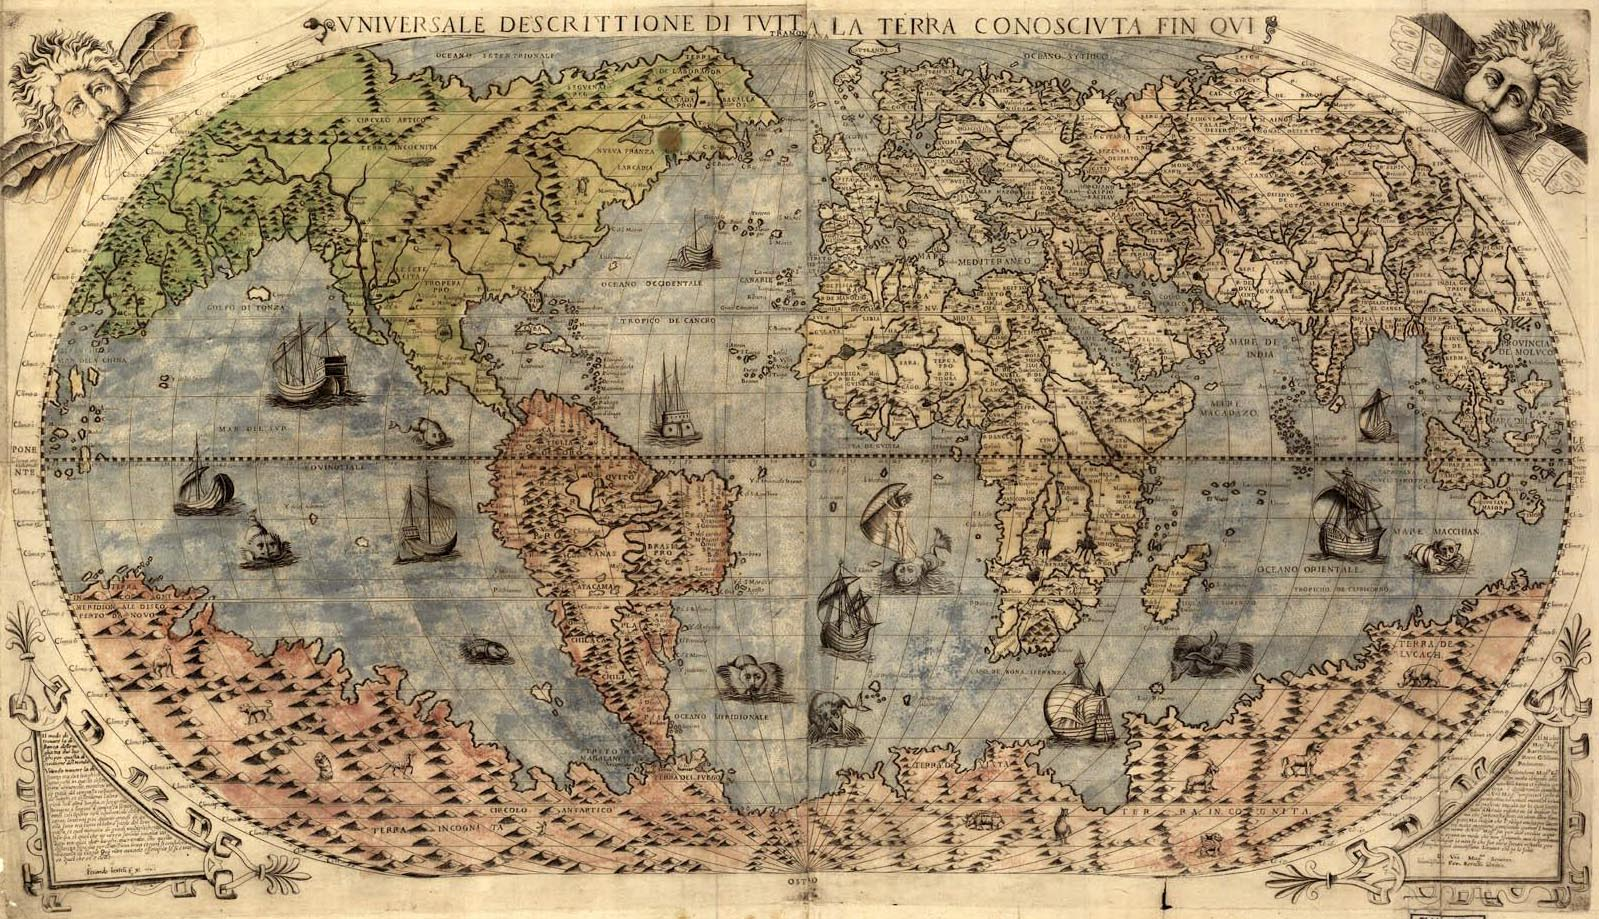 Old map of the world from the 1500 s